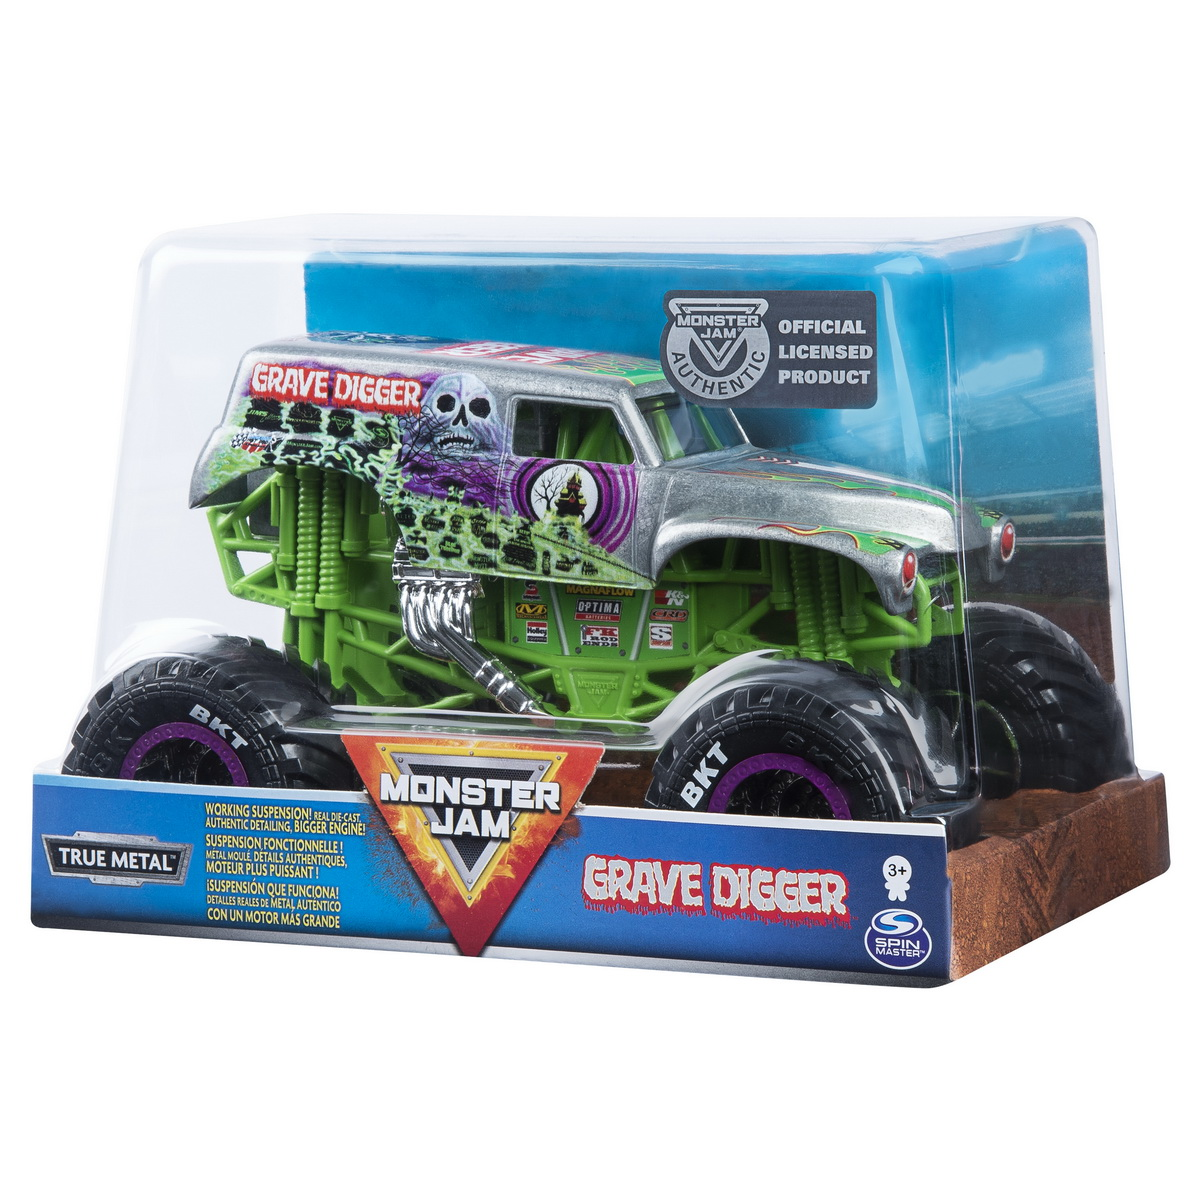 Monster jam macheta metalica scara 1 la 24 groparul